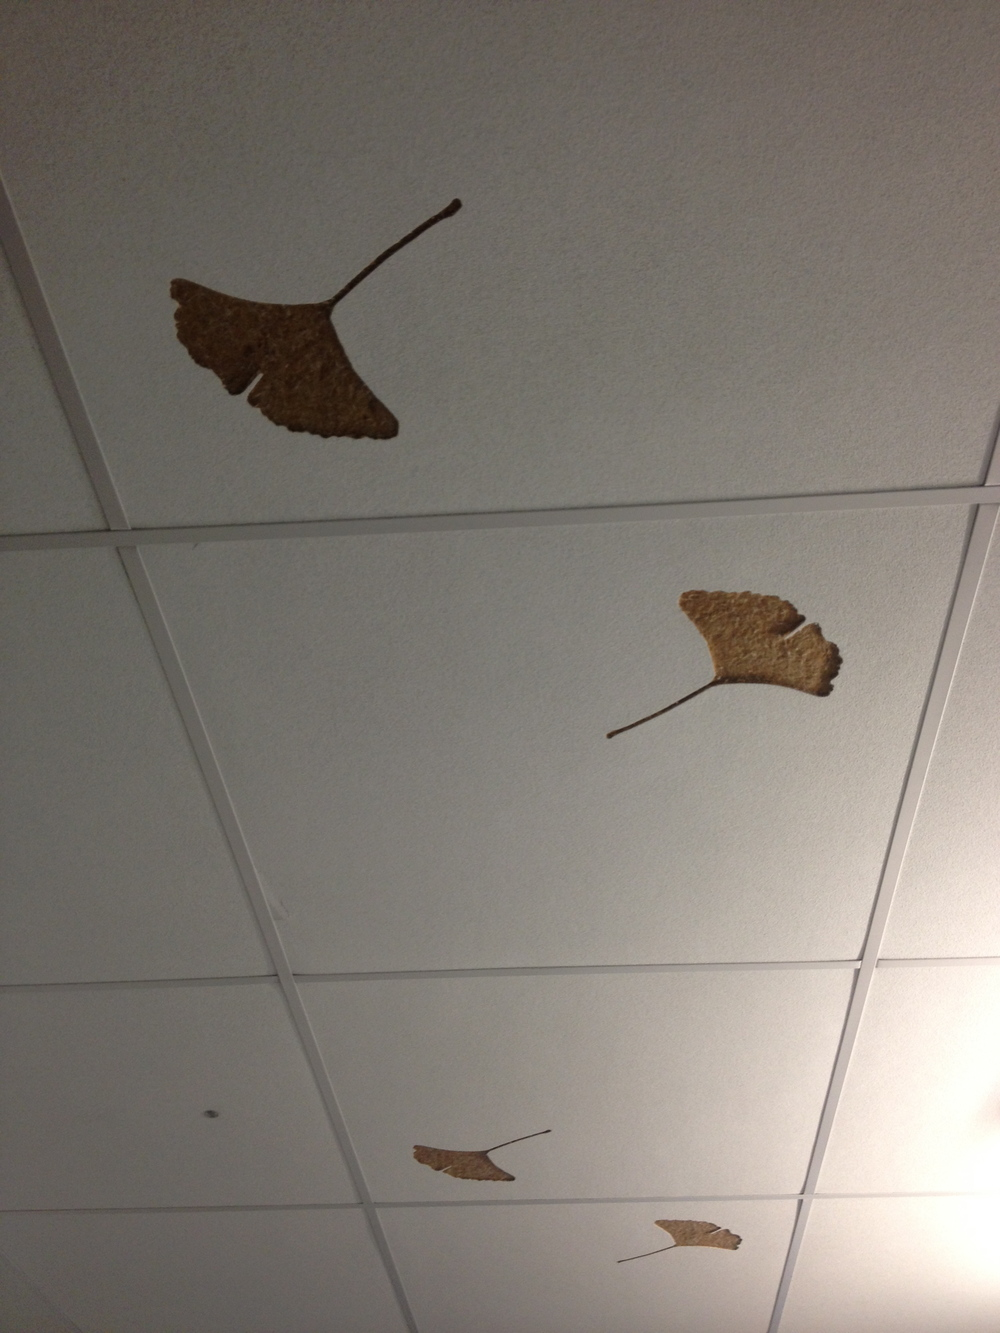 These ceiling tiles in the copy room, an office space notorious for giving off high levels of off-gassing, are made from Ginko leaves. The manufacturer imprinted individuals leaves on these tiles as a reminder of their origins